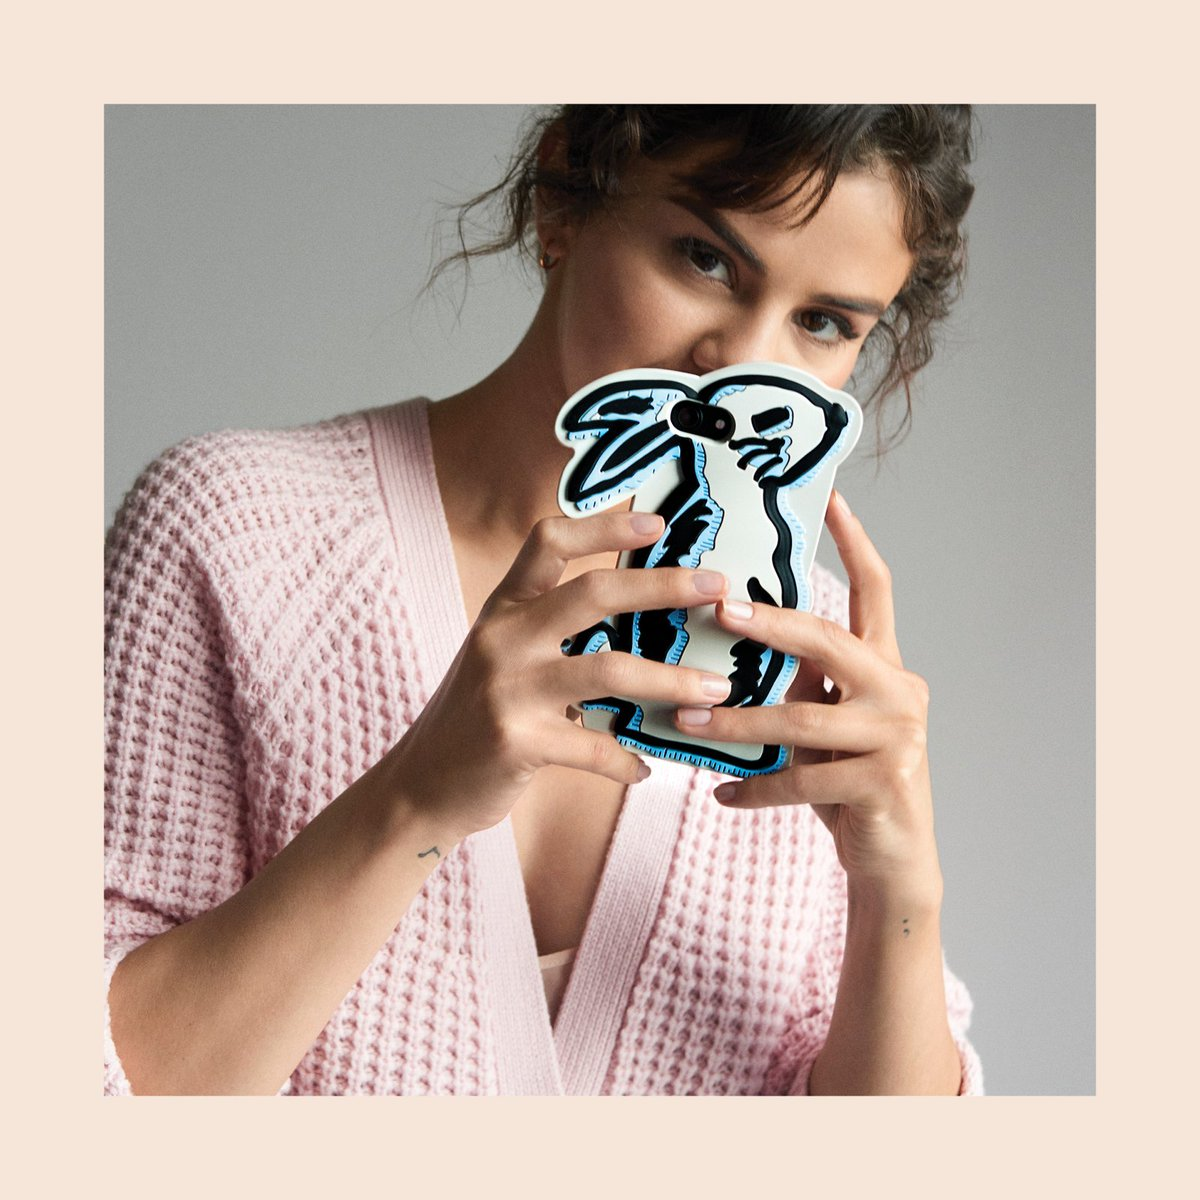 A little selfie action never hurt no bunny. 🐰 Pre-order the new #CoachxSelena now https://t.co/77FgCFMPdE. #CoachNY